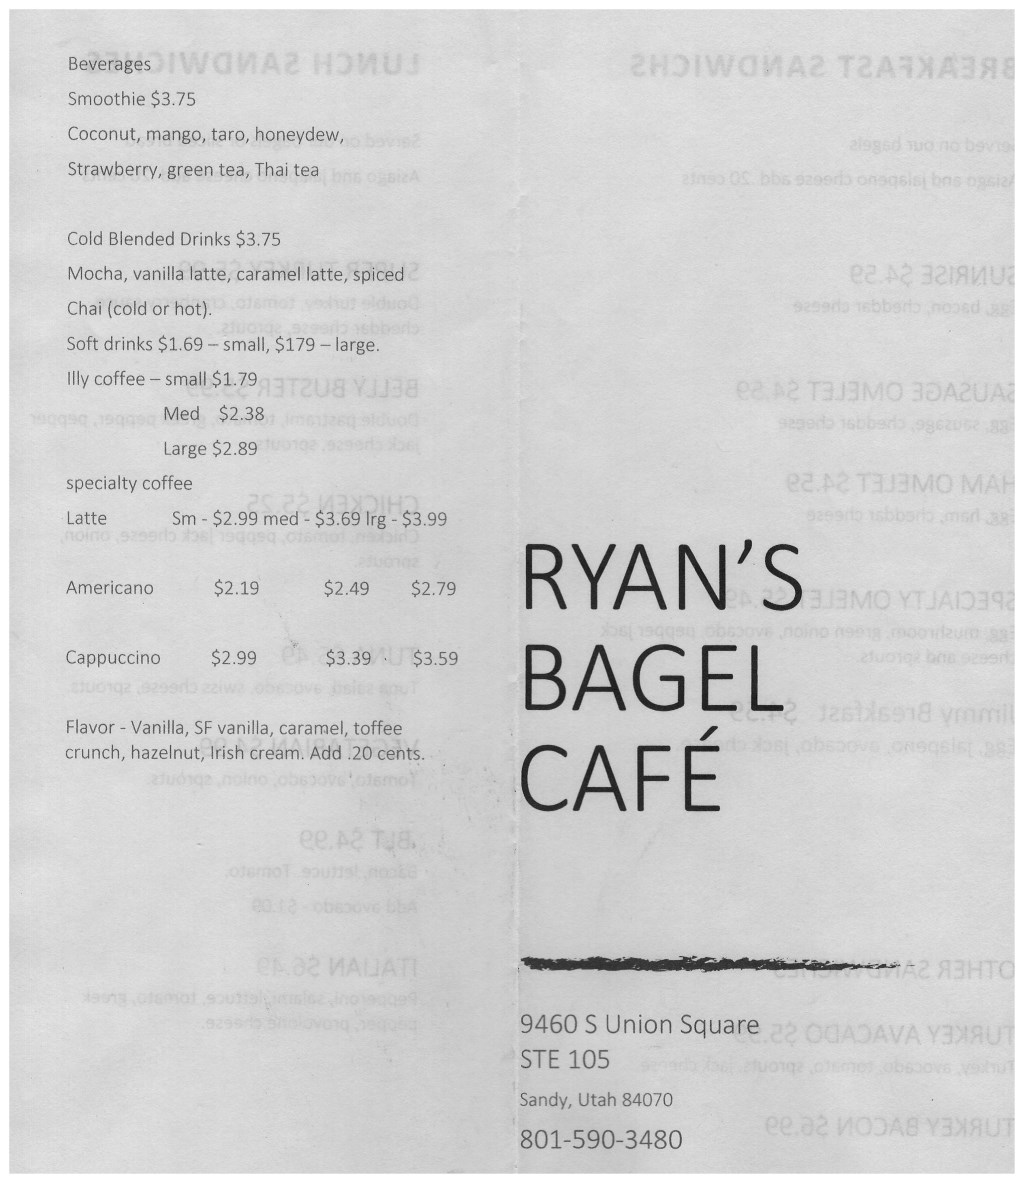 Ryan's Bagel Cafe menu - beverages